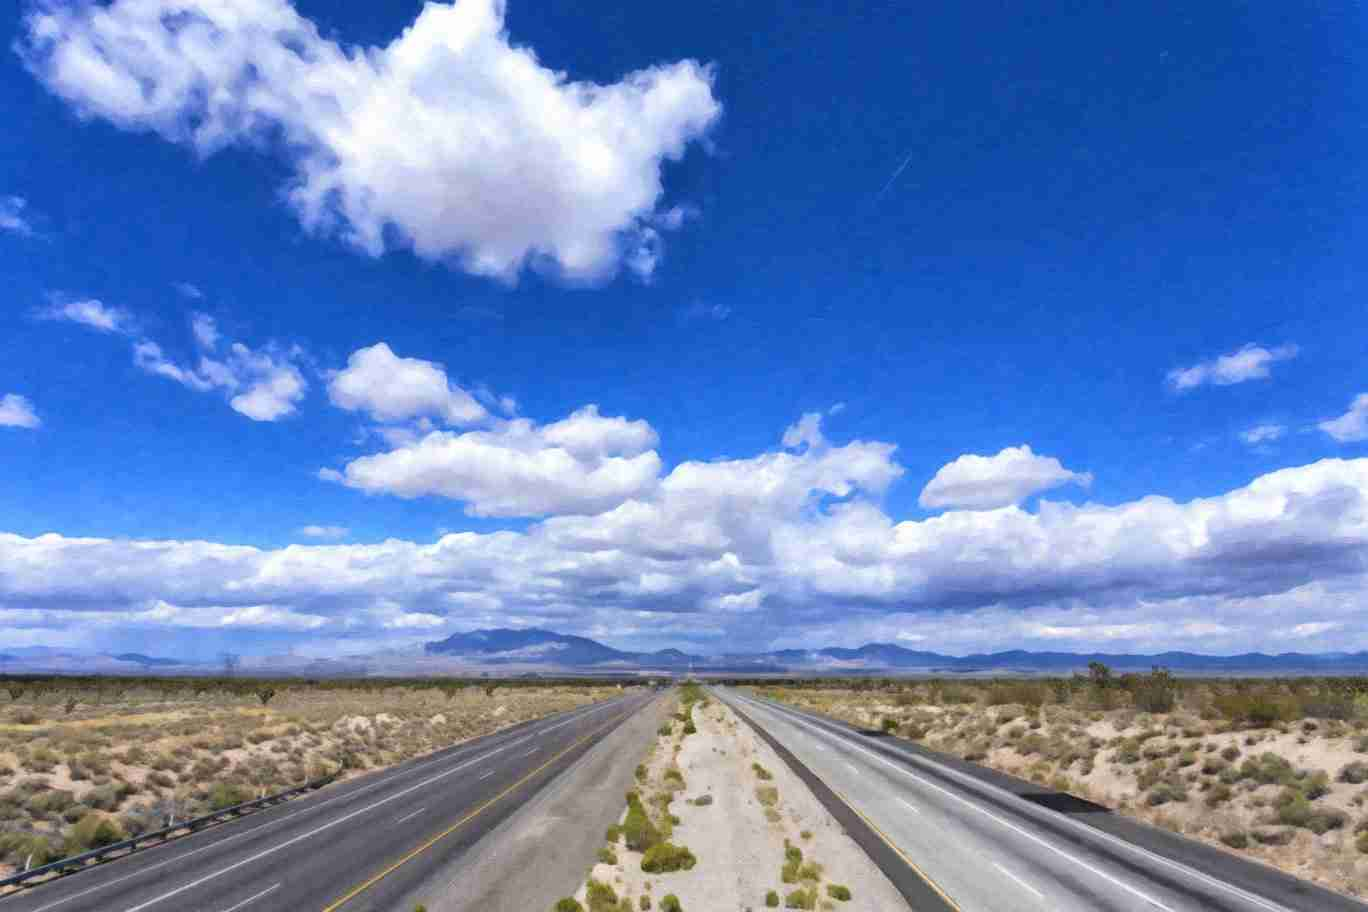 Print of Highway 15 En-route to Las Vegas